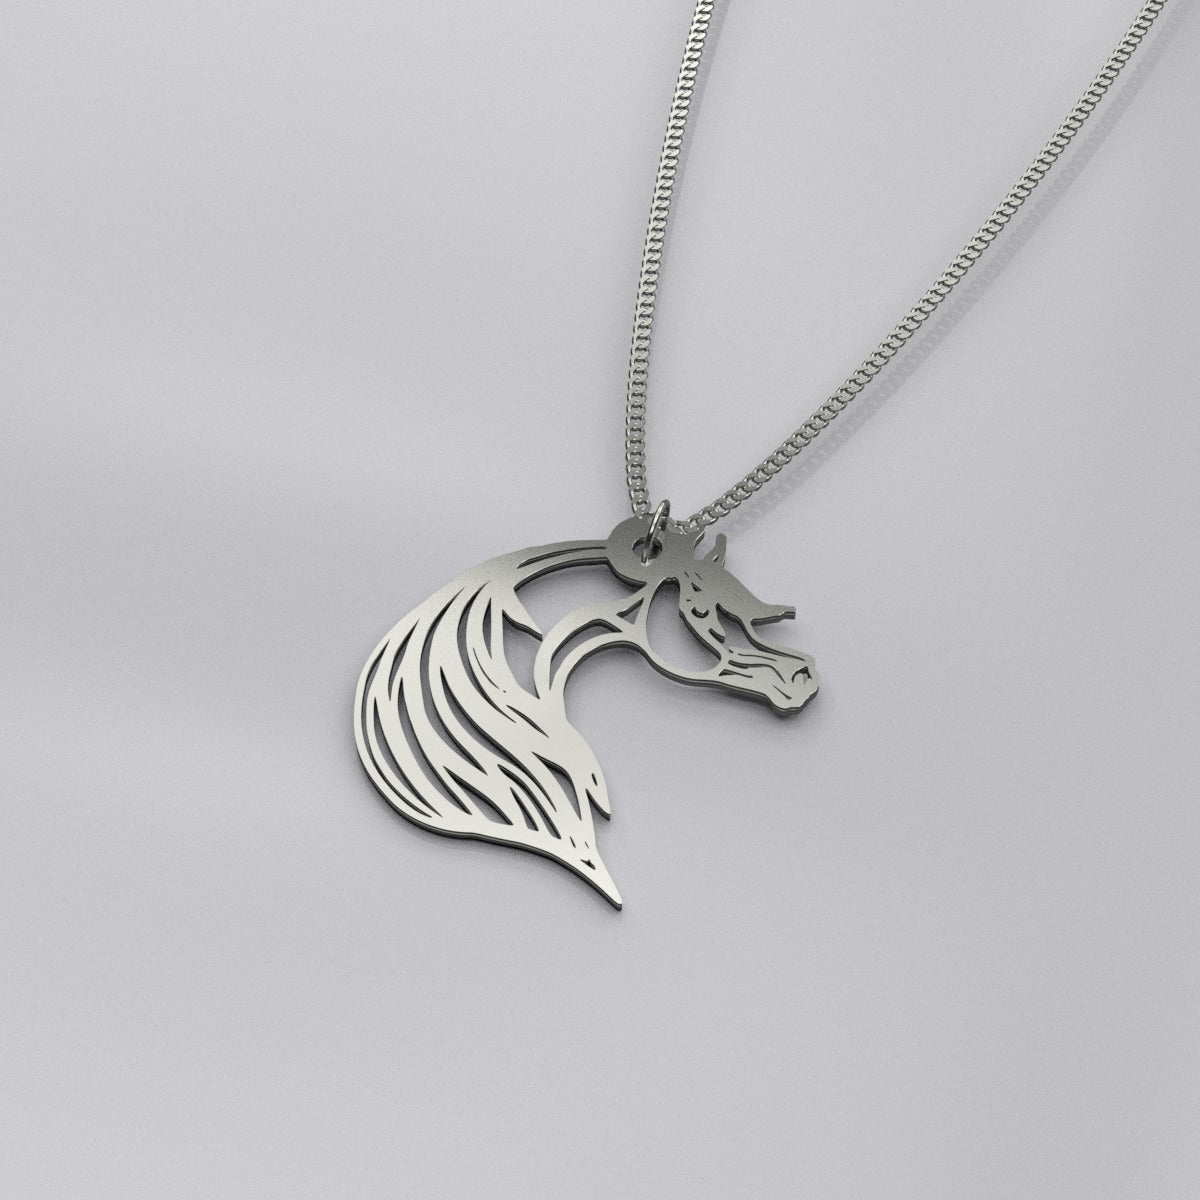 Simply beautiful Arabian Silver Necklace